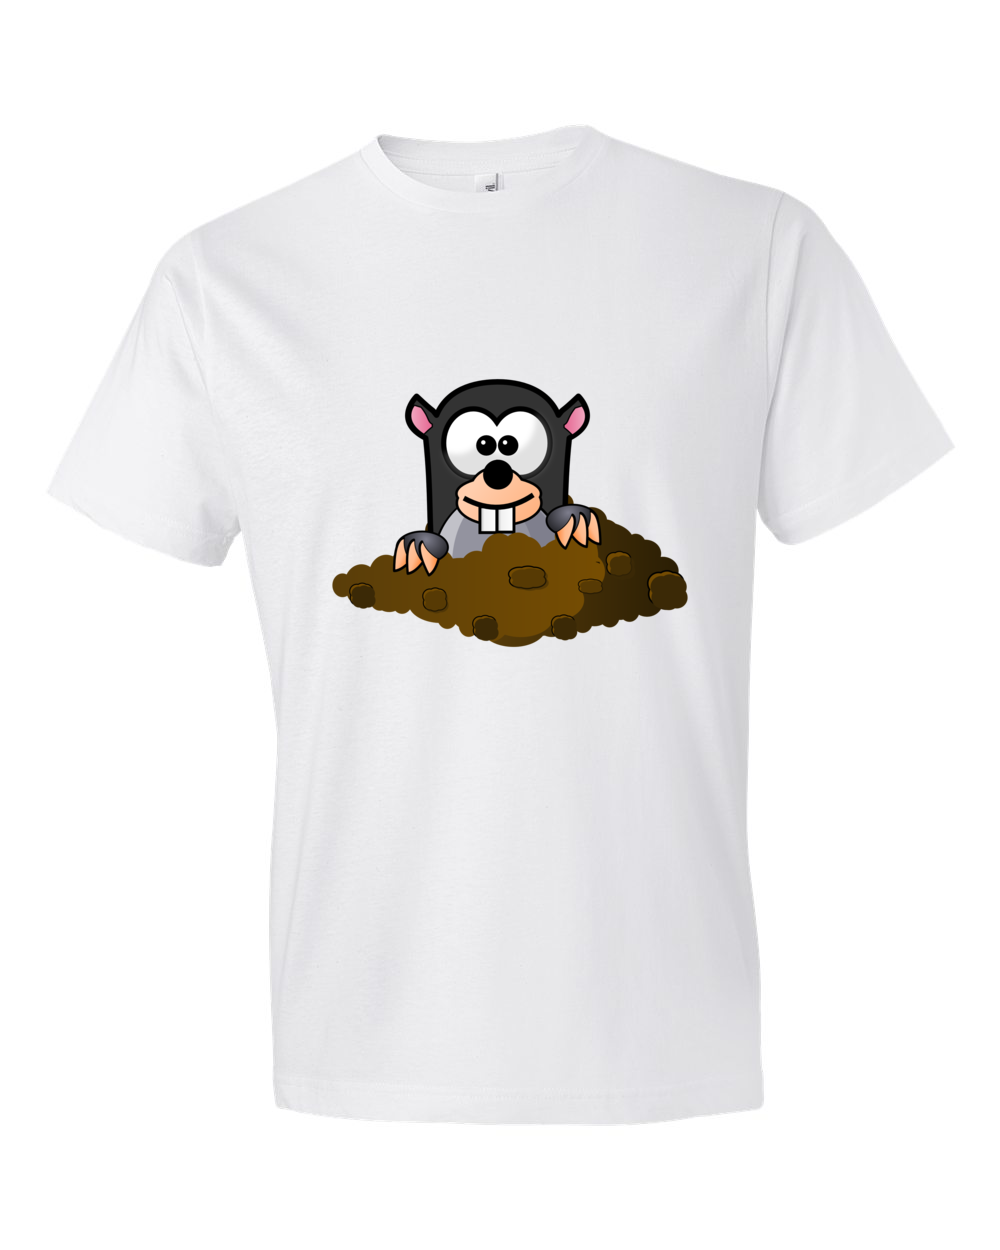 Mole-Lightweight-Fashion-Short-Sleeve-T-Shirt-by-iTEE.com